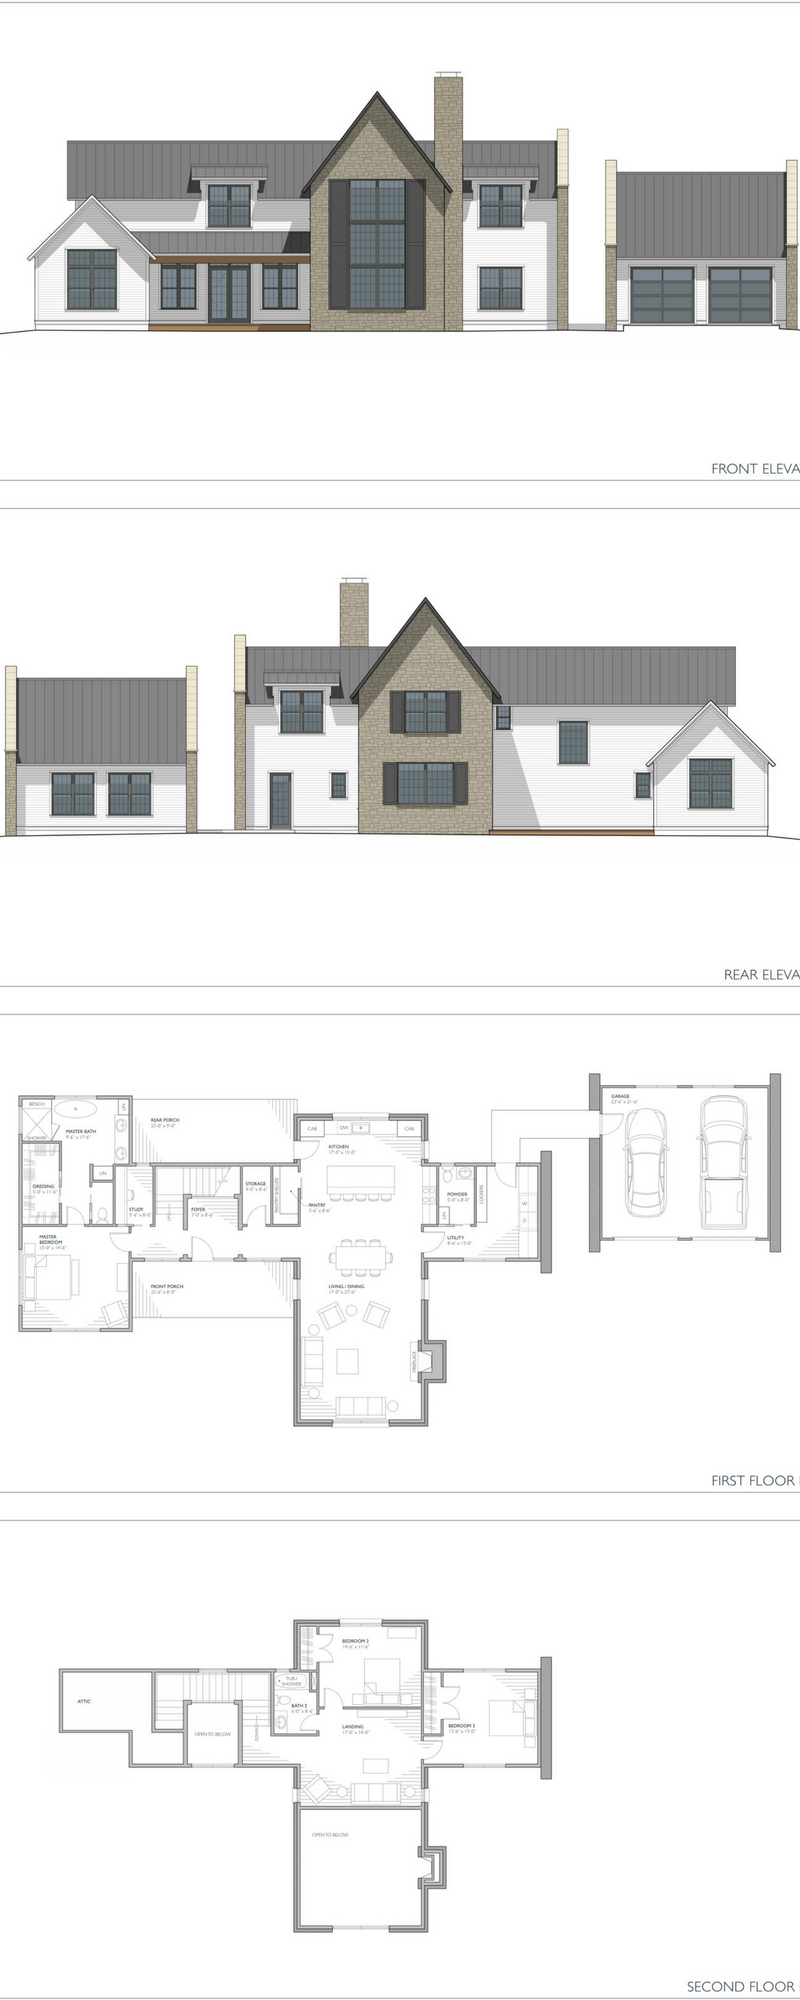 New house plans now available the aubrac 3152 sf two story floor plan